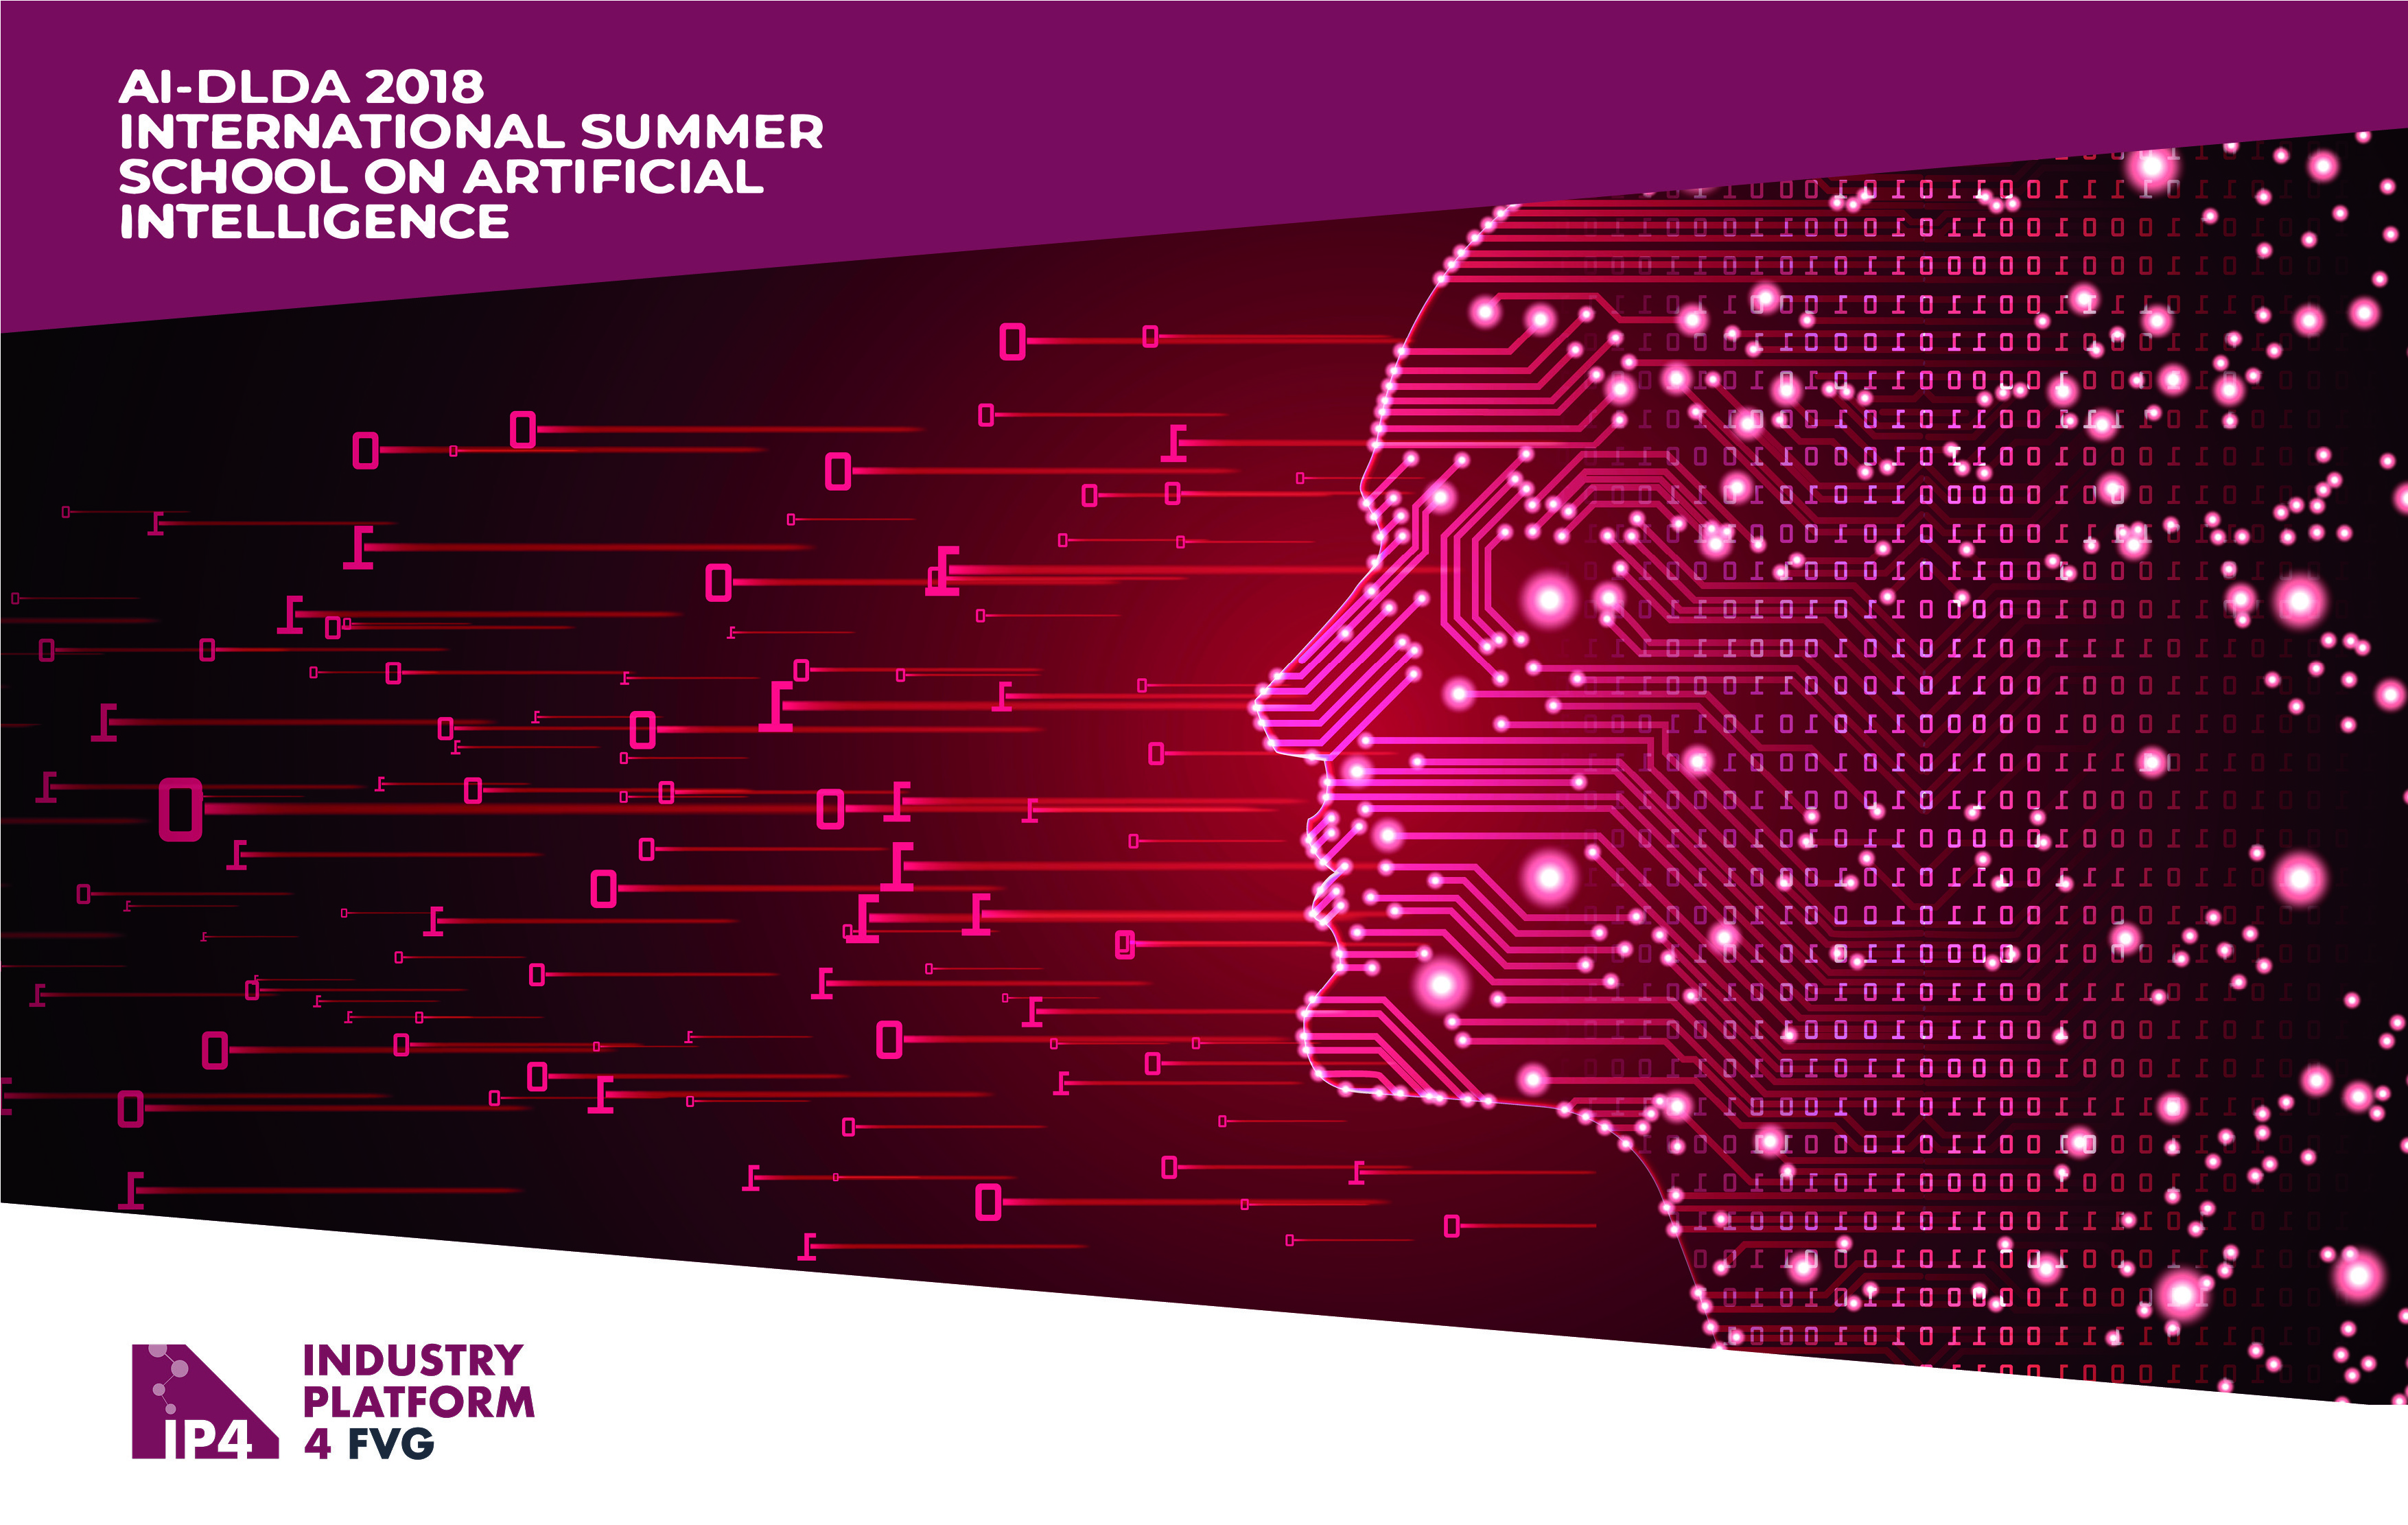 Al via la prima Summer School sull'Intelligenza artificiale